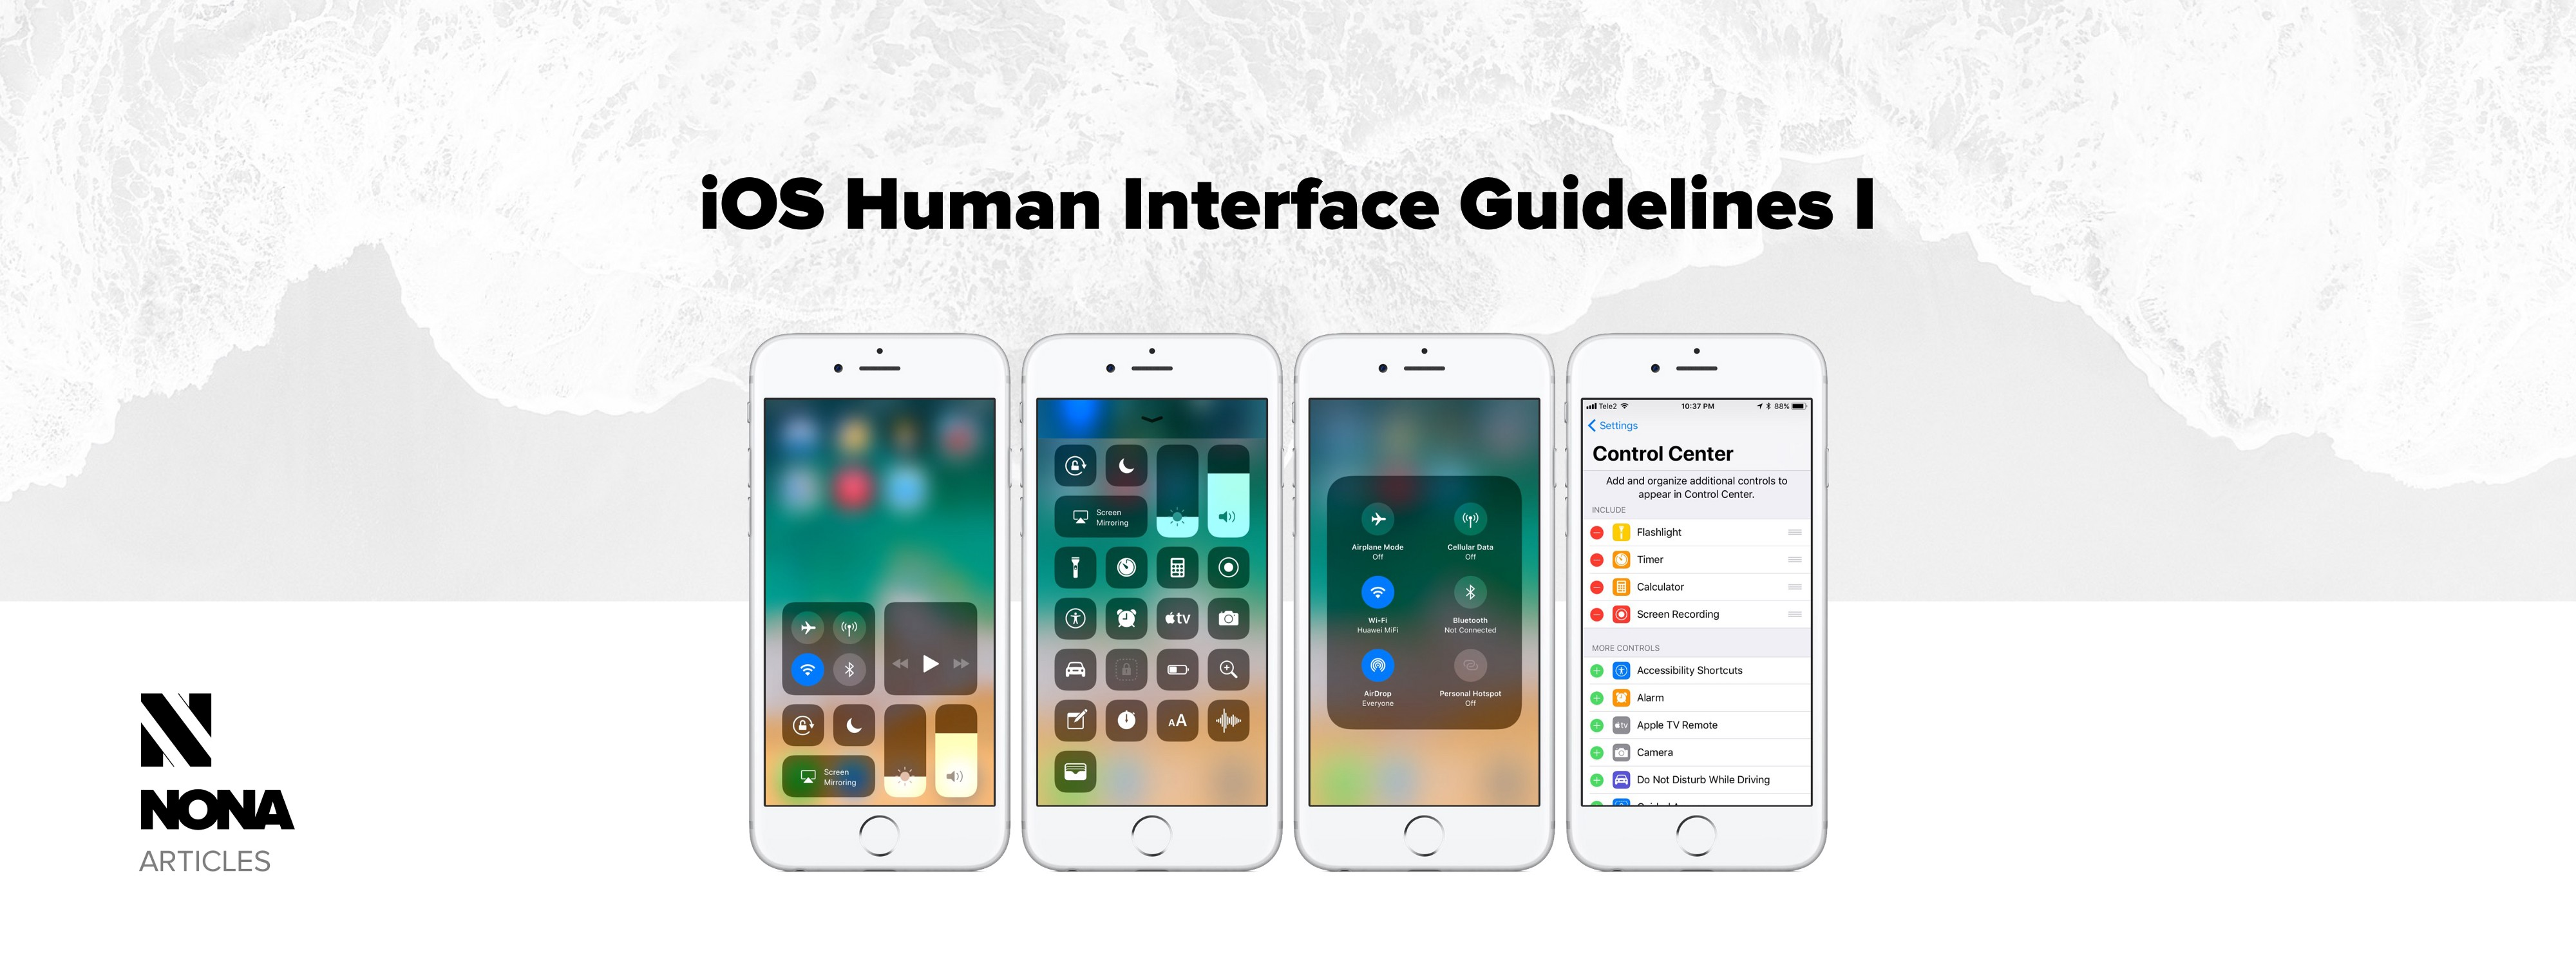 iOS Human Interface Guidelines I - NONA - Medium